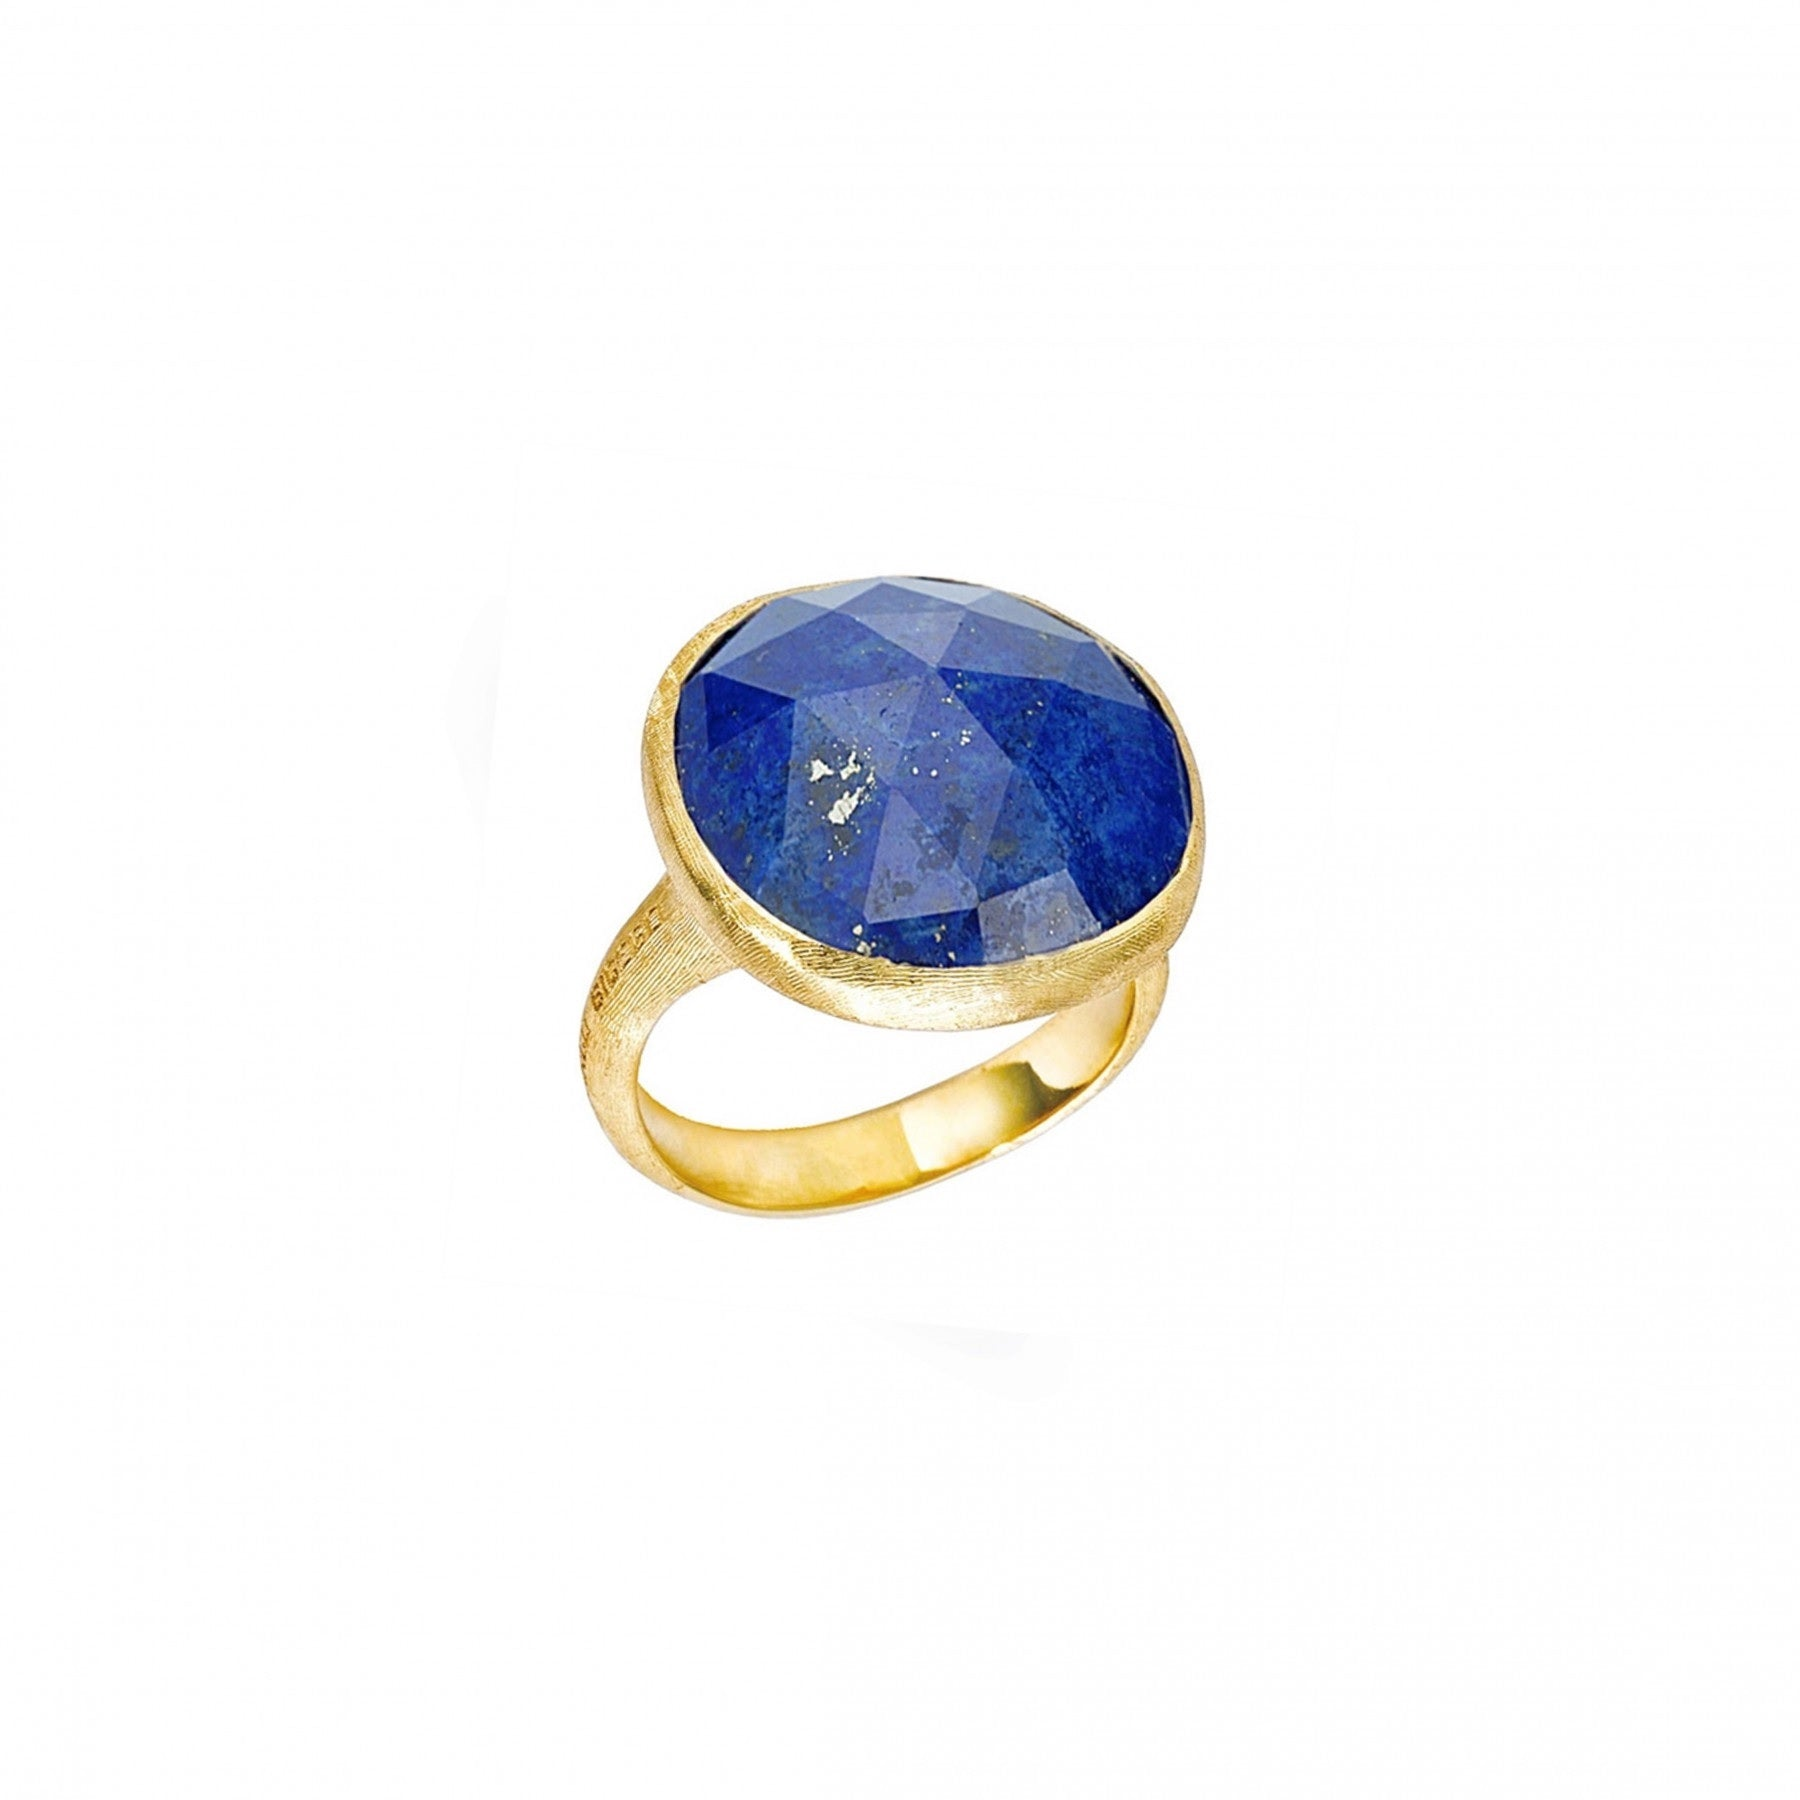 18K Yellow Gold & Blue Lapis Ring